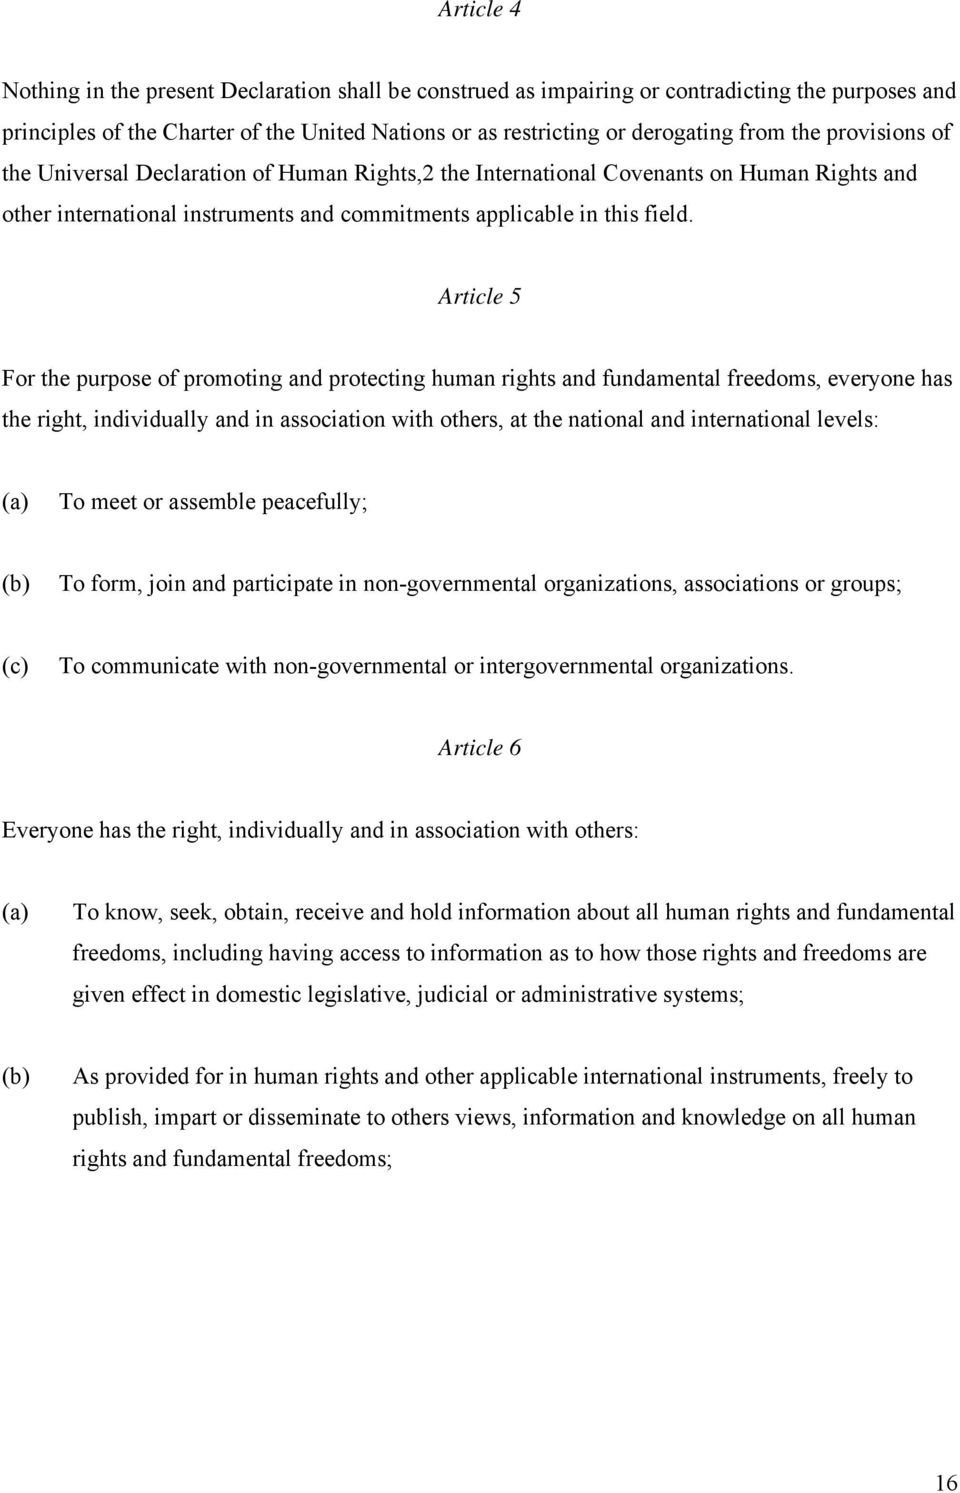 Article 5 For the purpose of promoting and protecting human rights and fundamental freedoms, everyone has the right, individually and in association with others, at the national and international